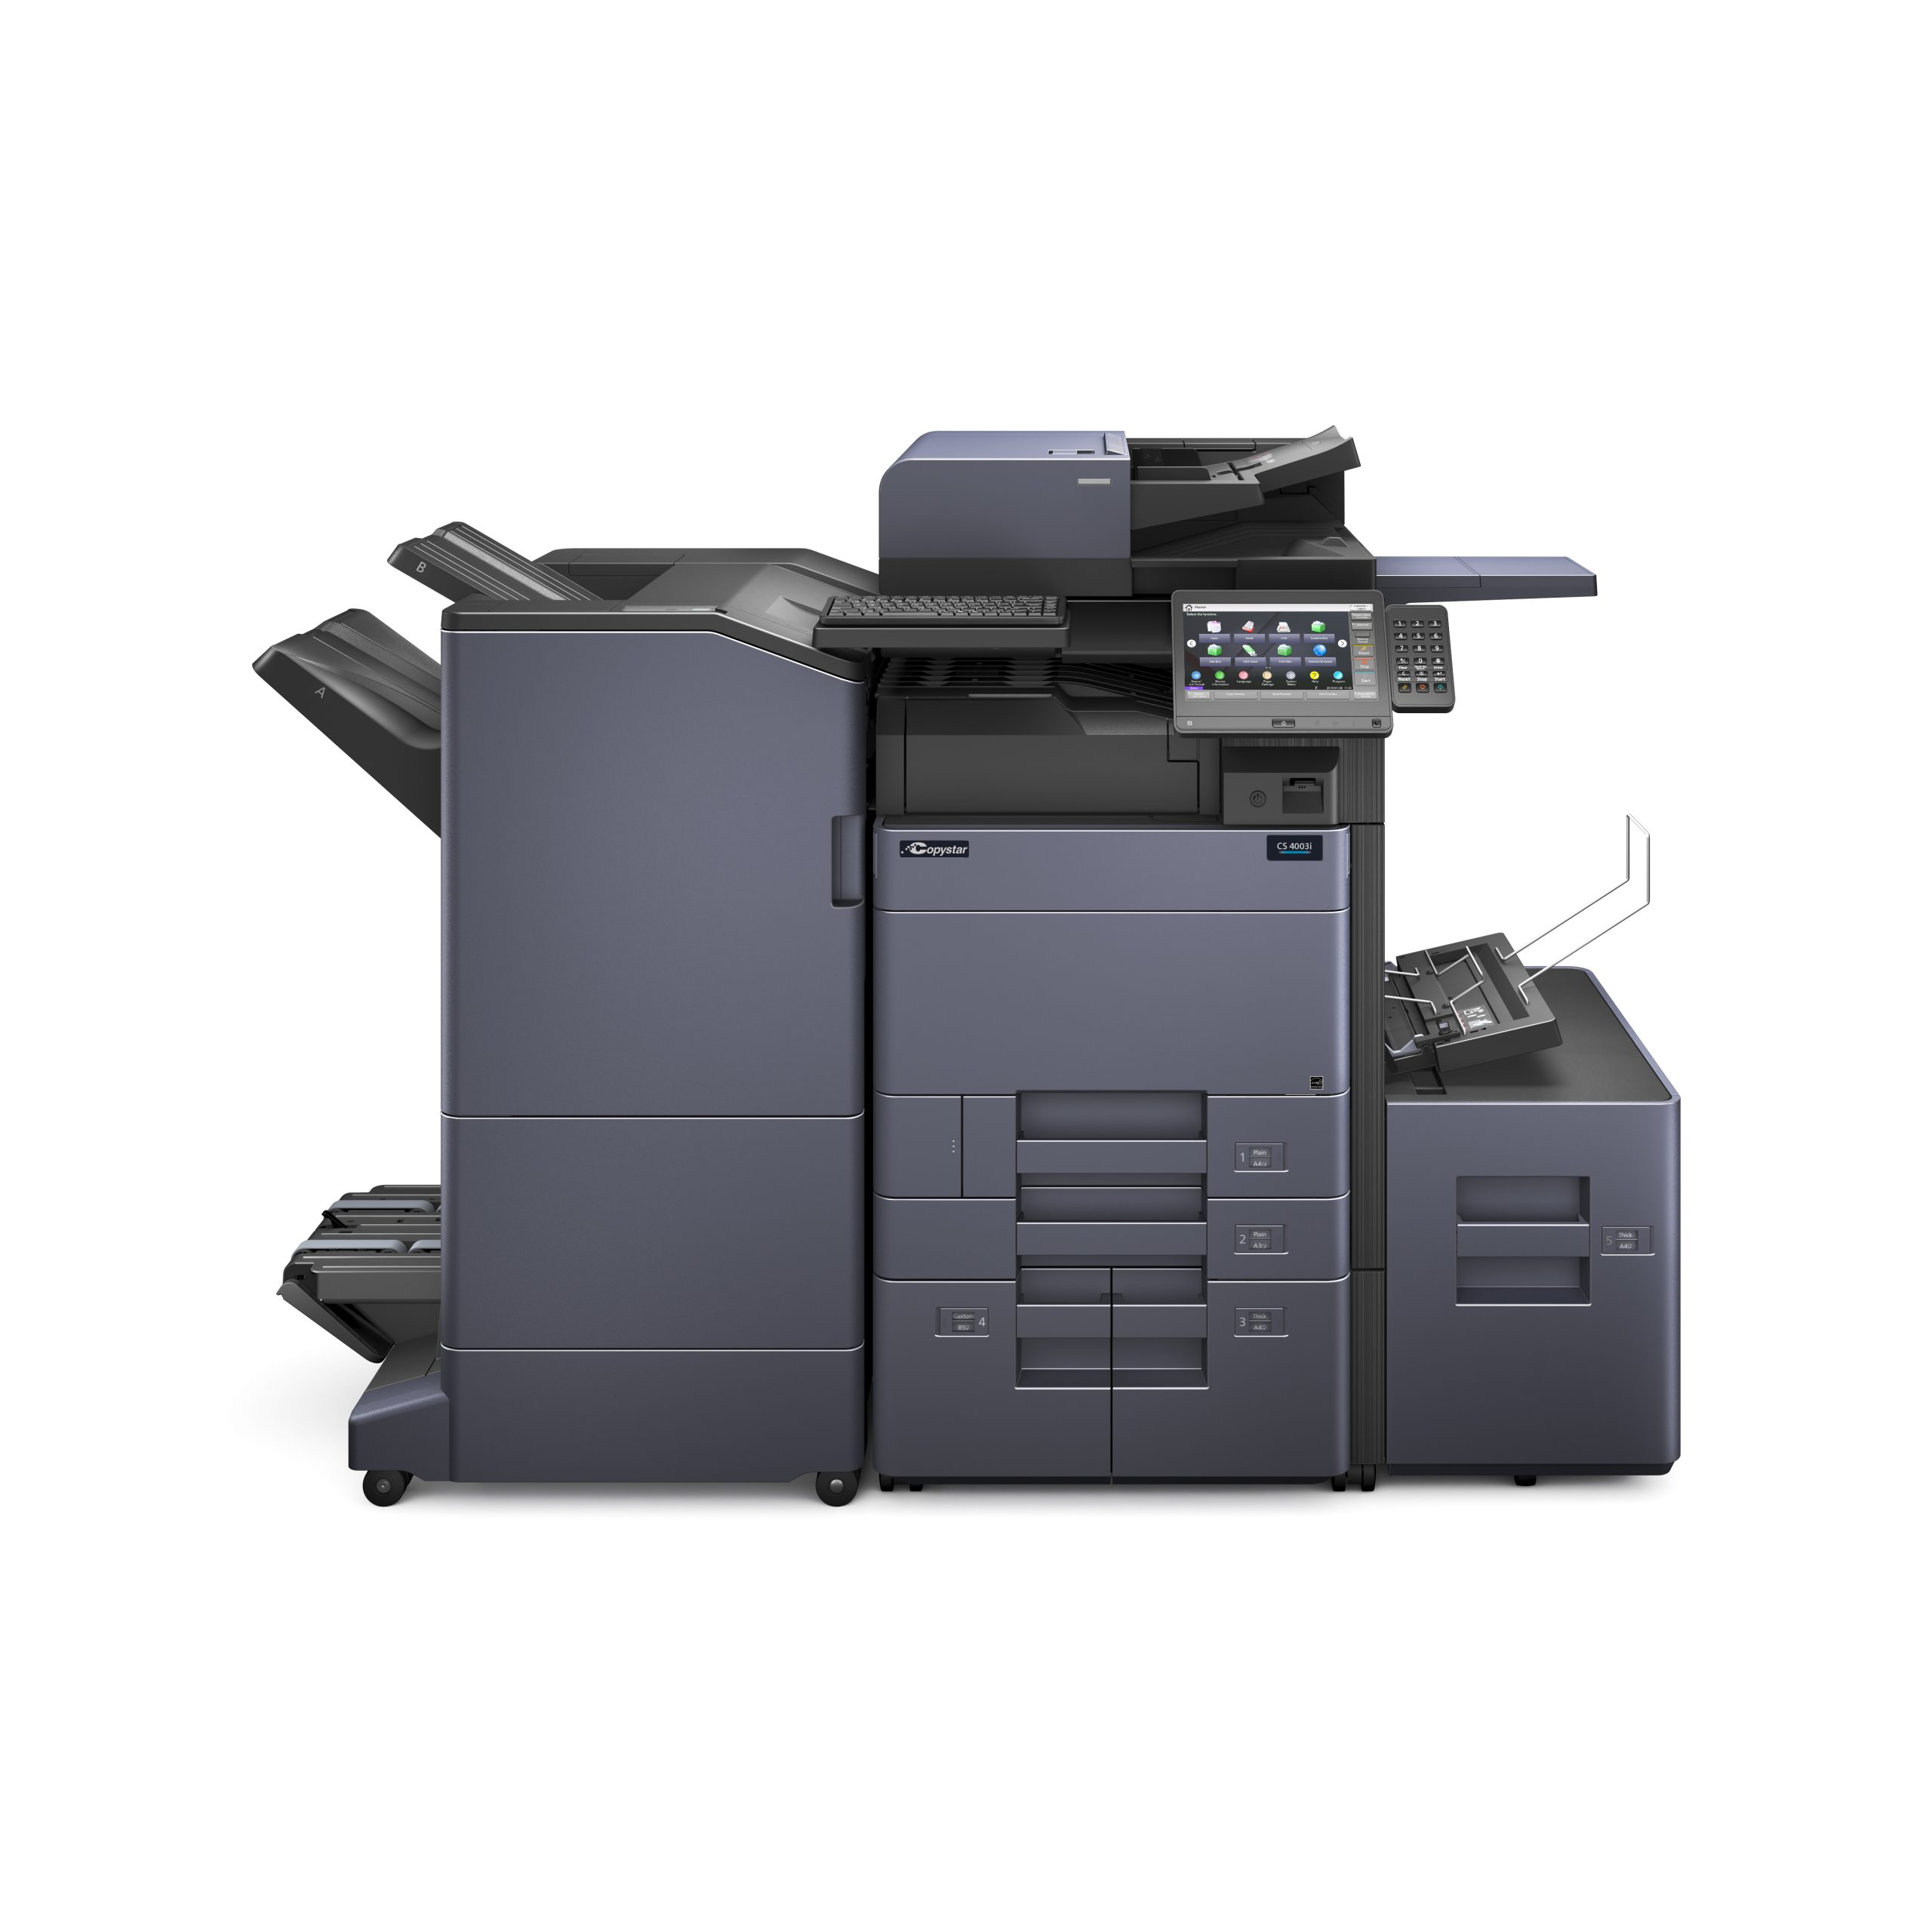 kyocera CS_4003i Copy Machine Lease Florida